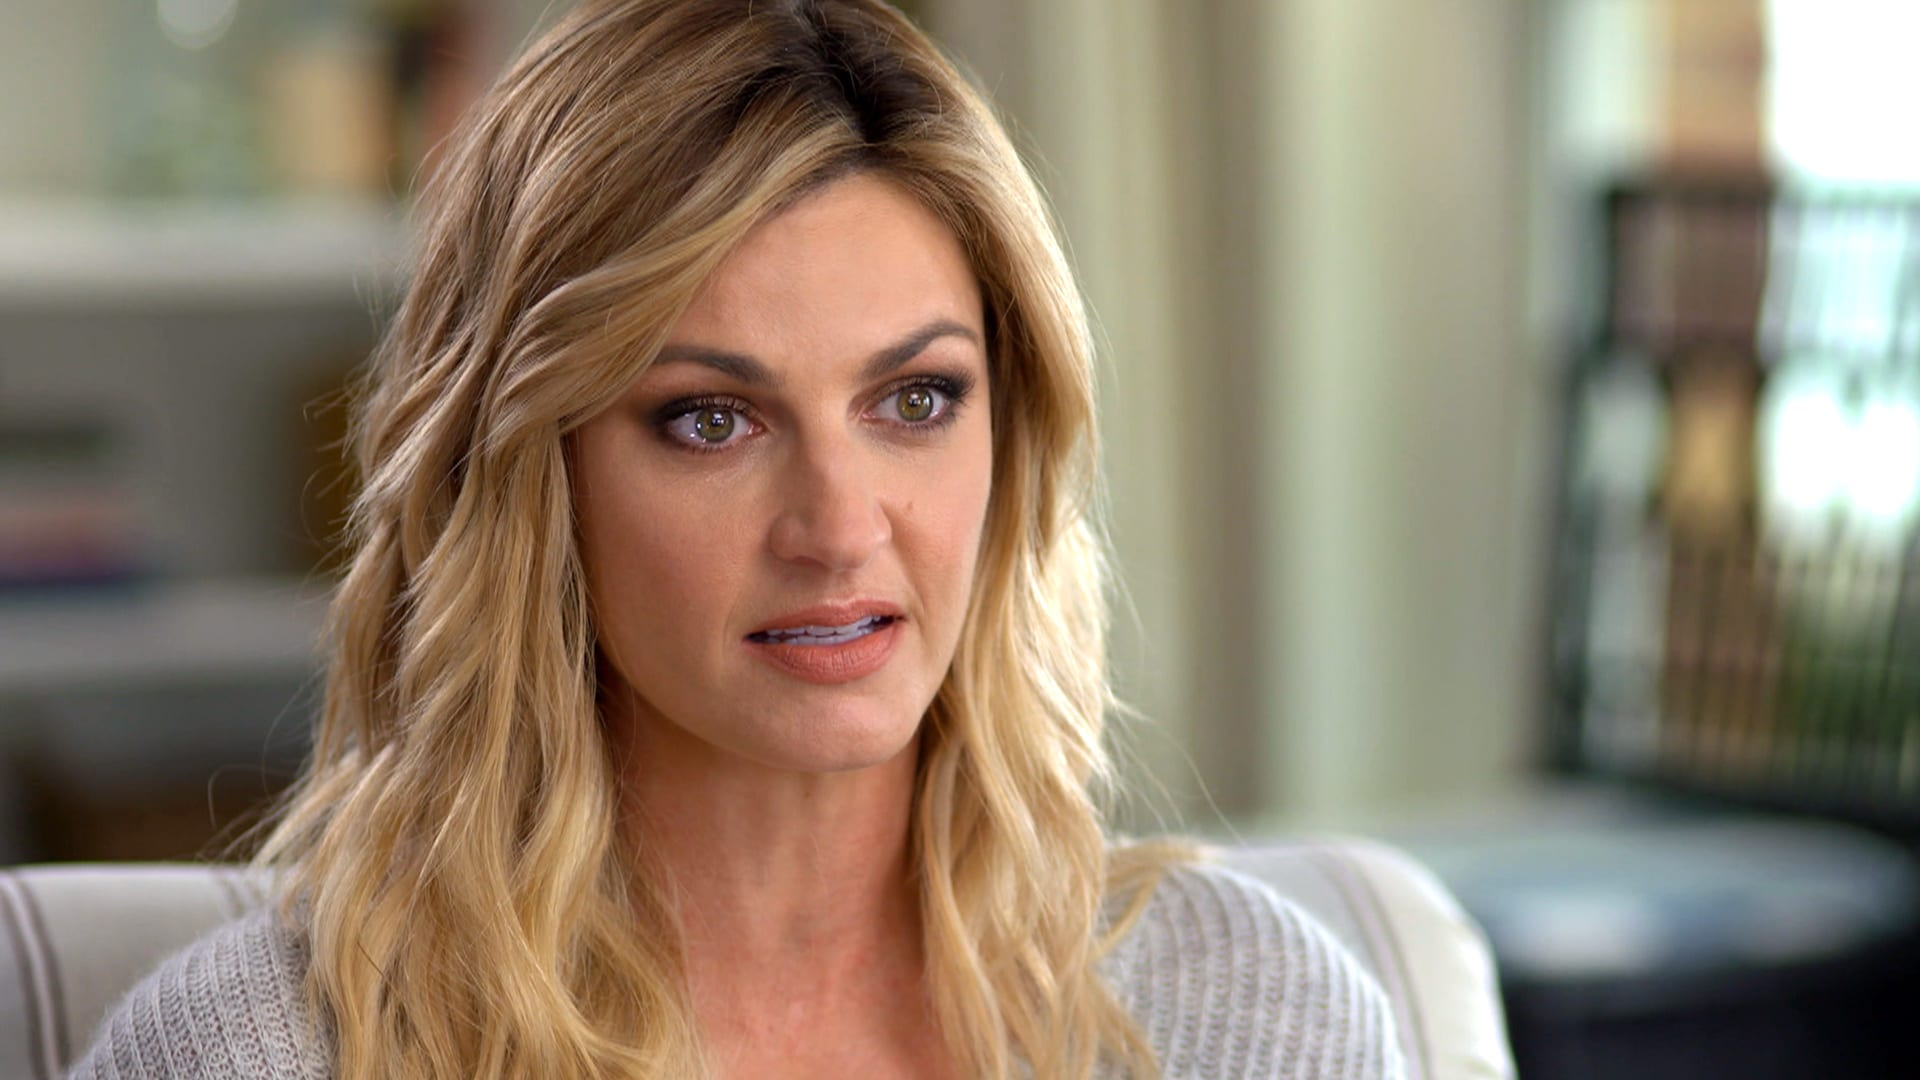 Who Is Erin Andrews Dating?